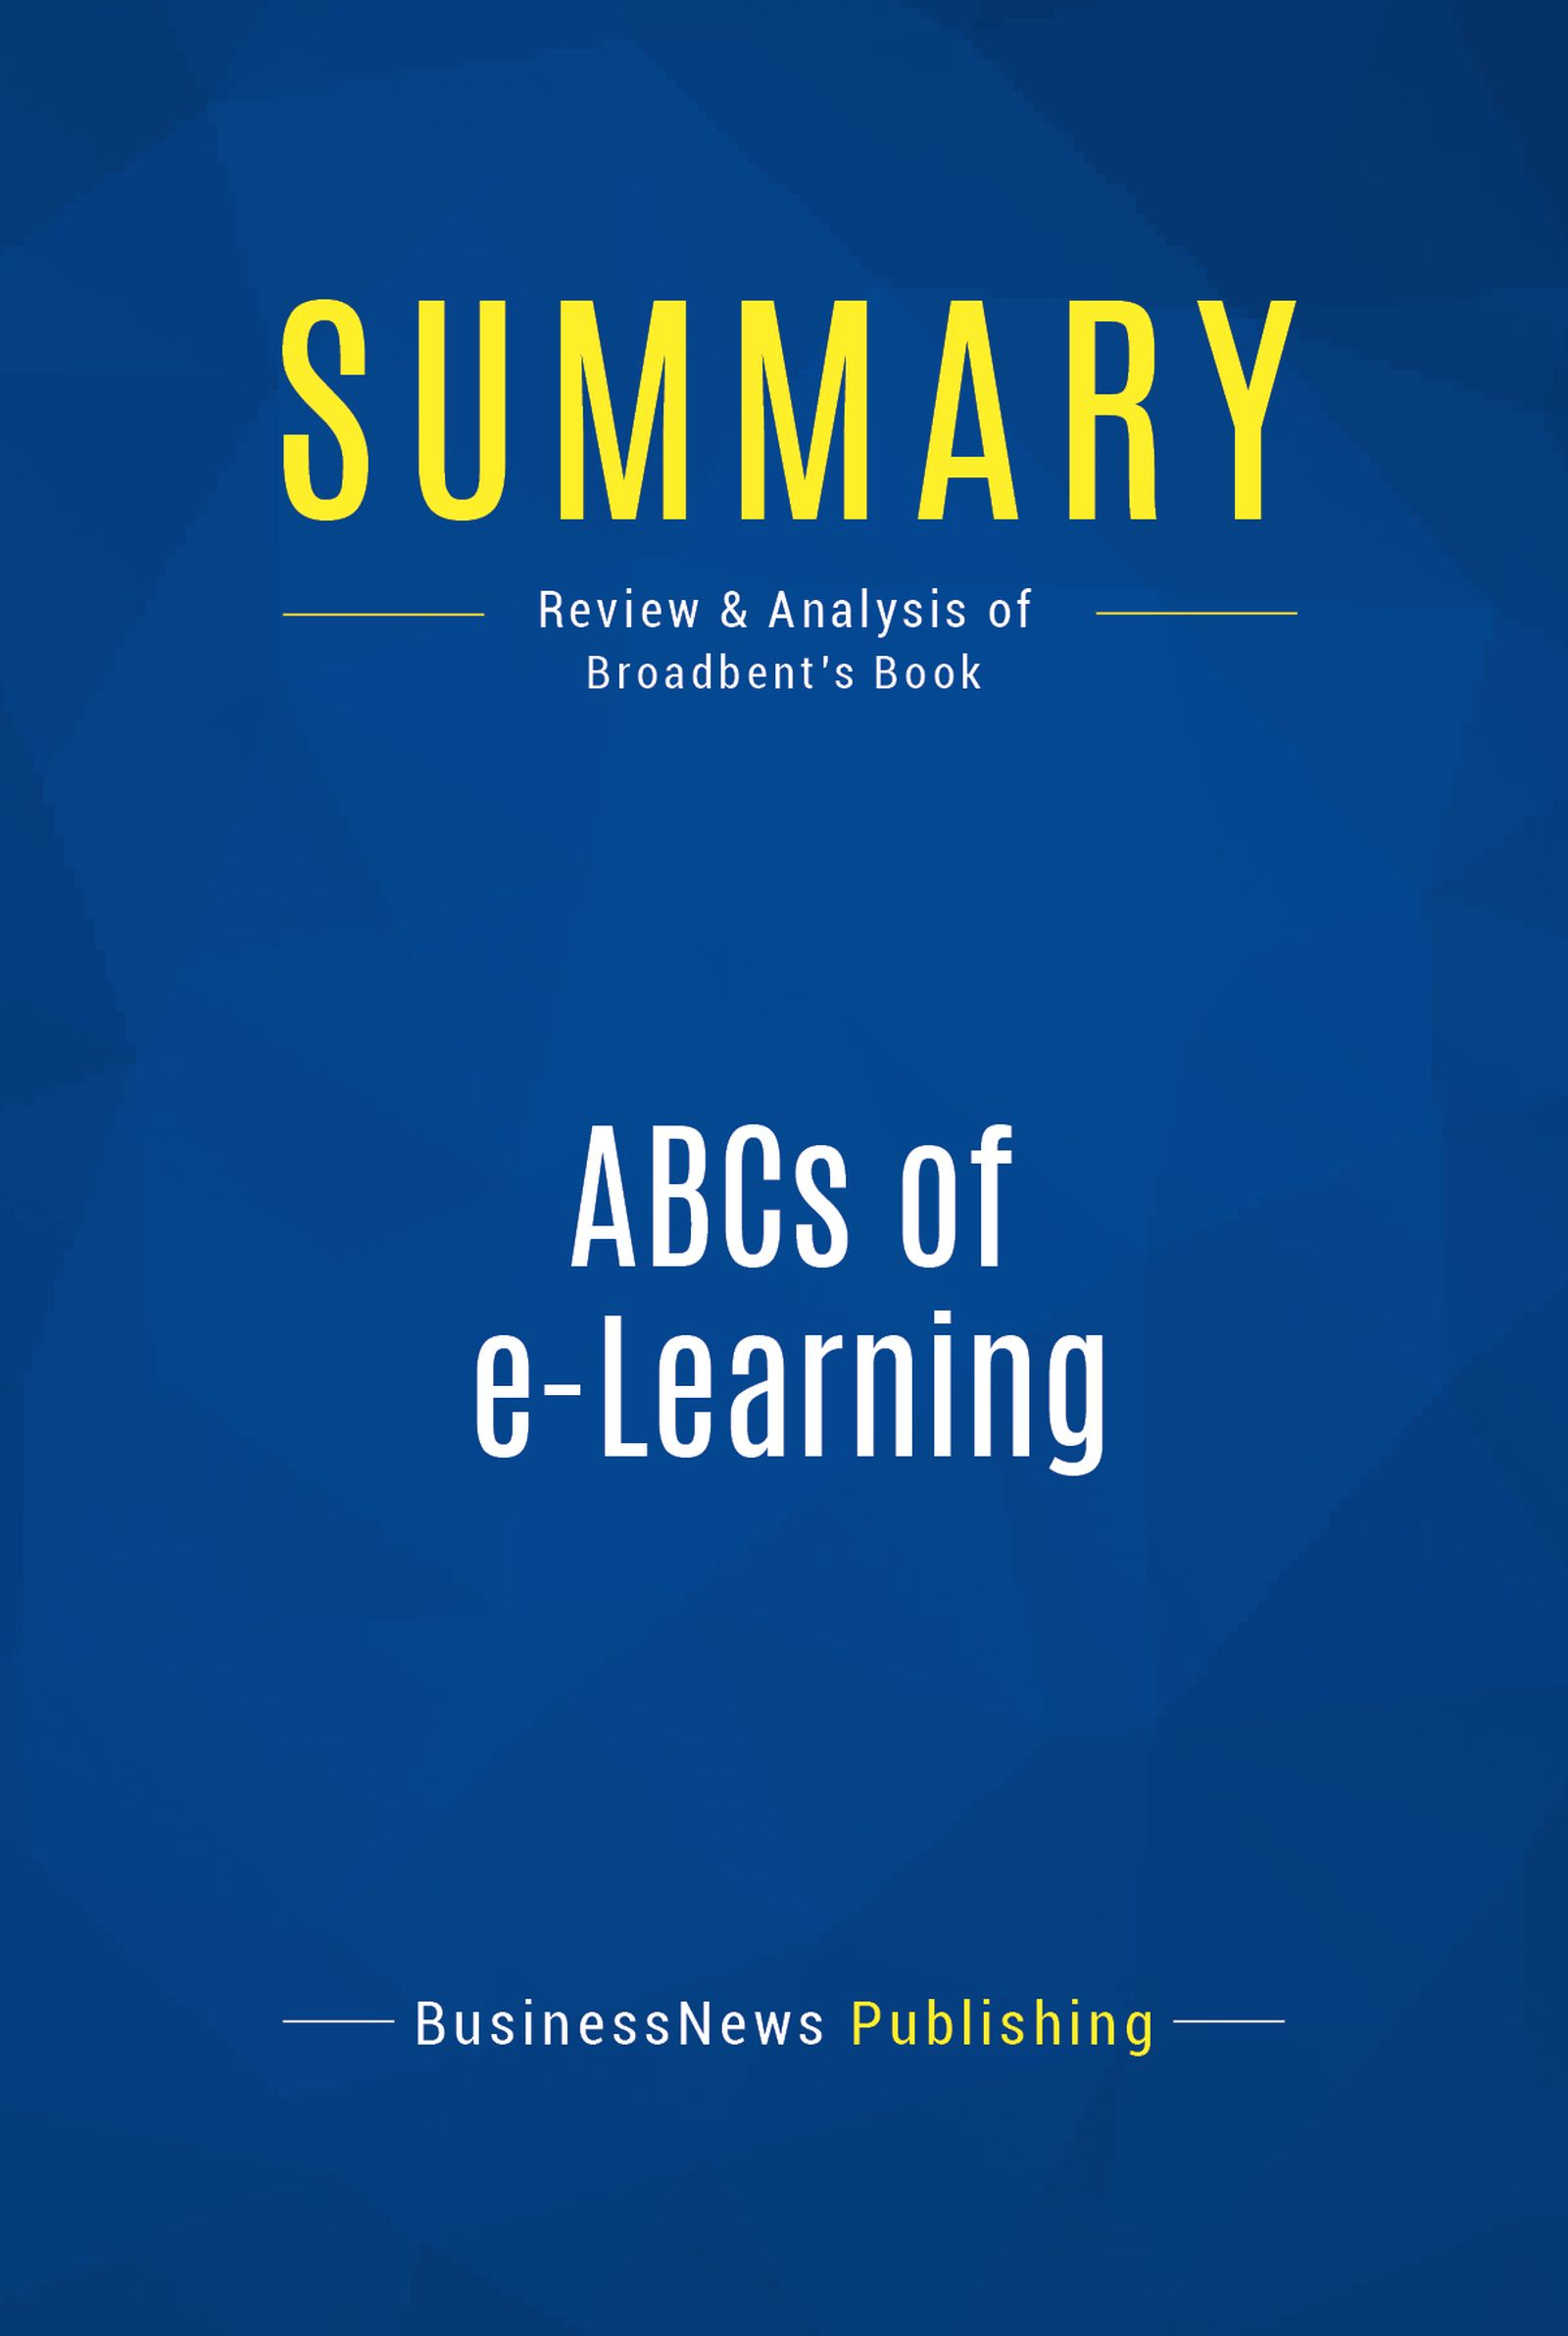 Summary: ABCs of e-Learning